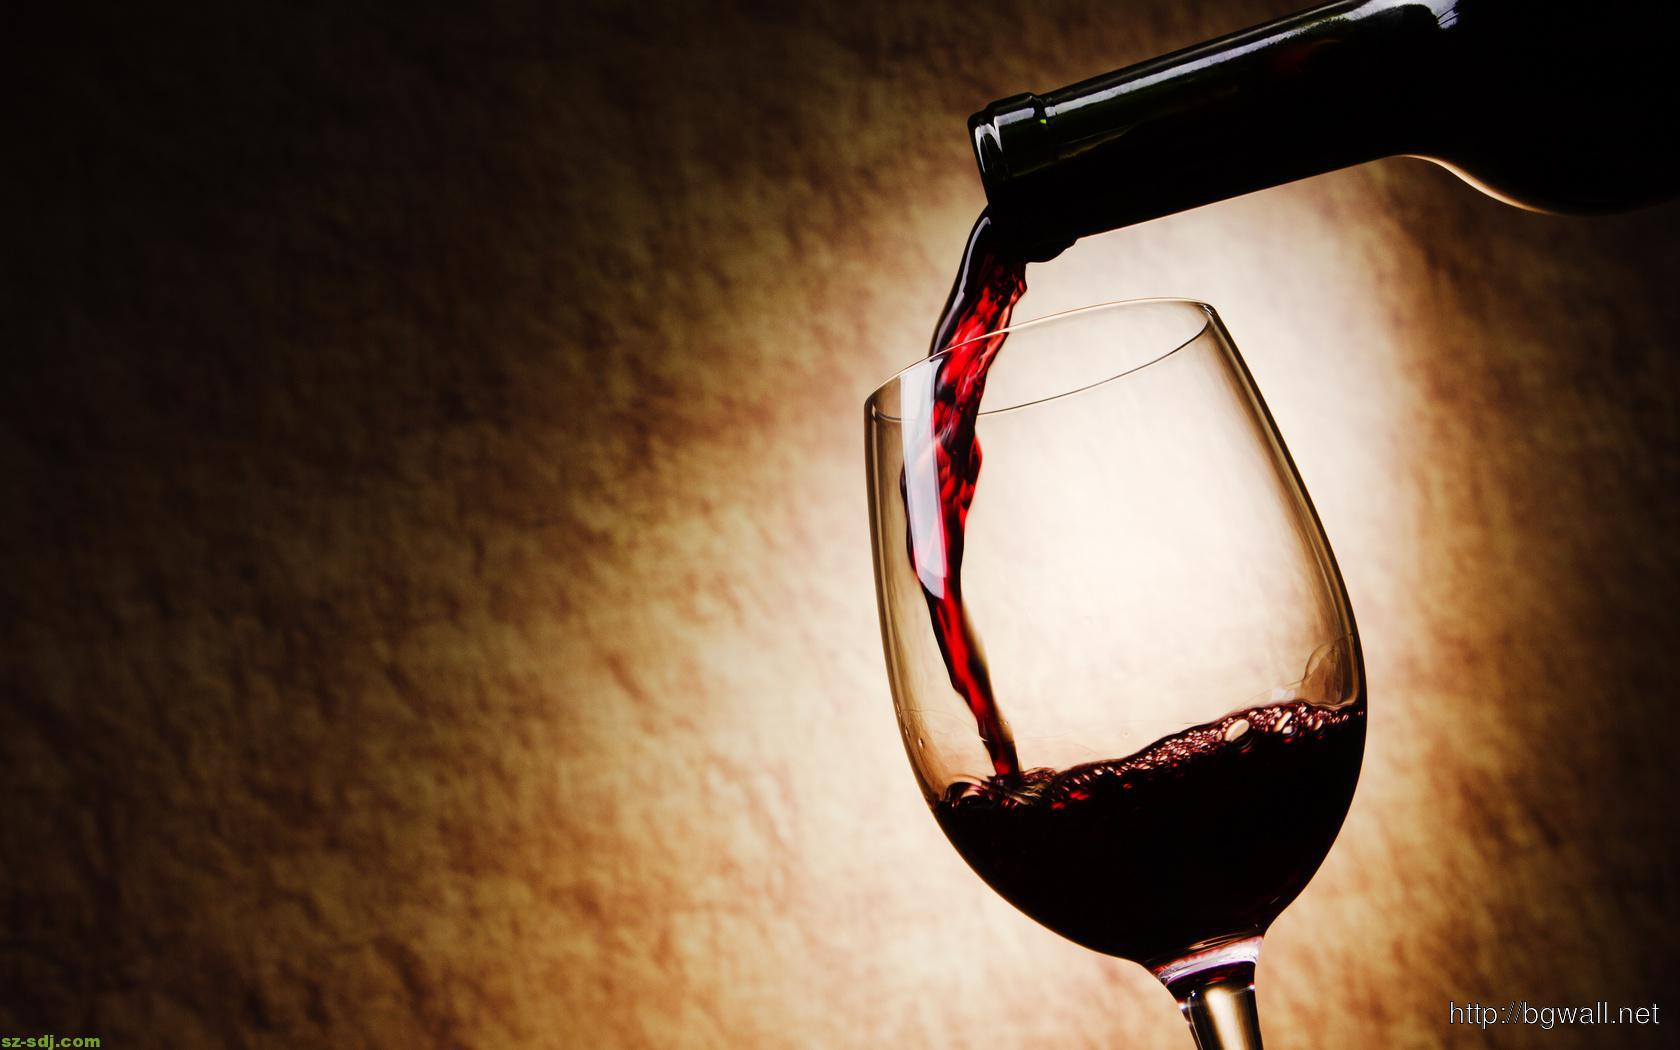 bottle-wine-wallpaper-image